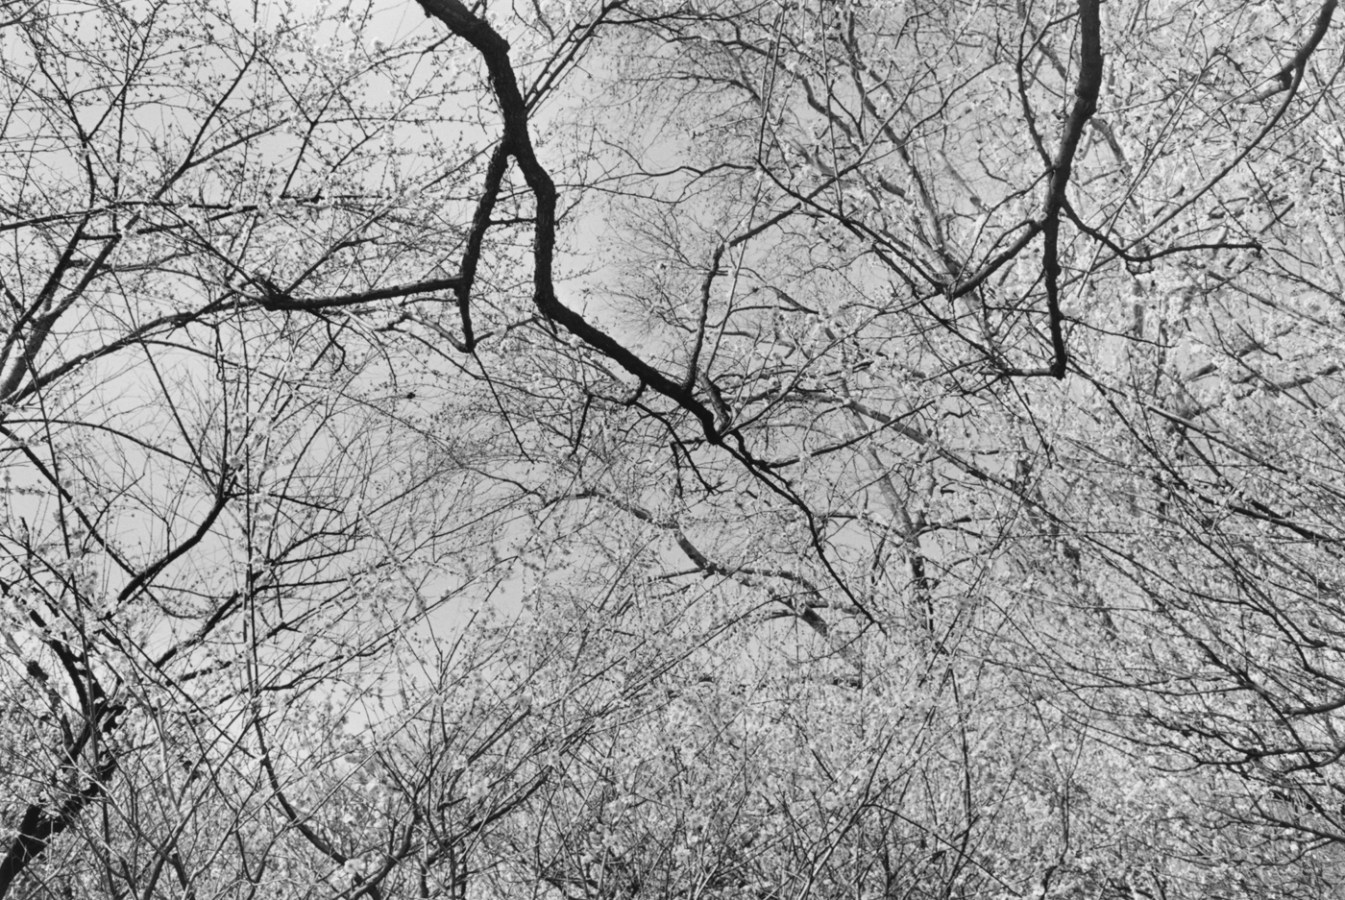 Black-and-white photograph looking upwards at bare tree branches